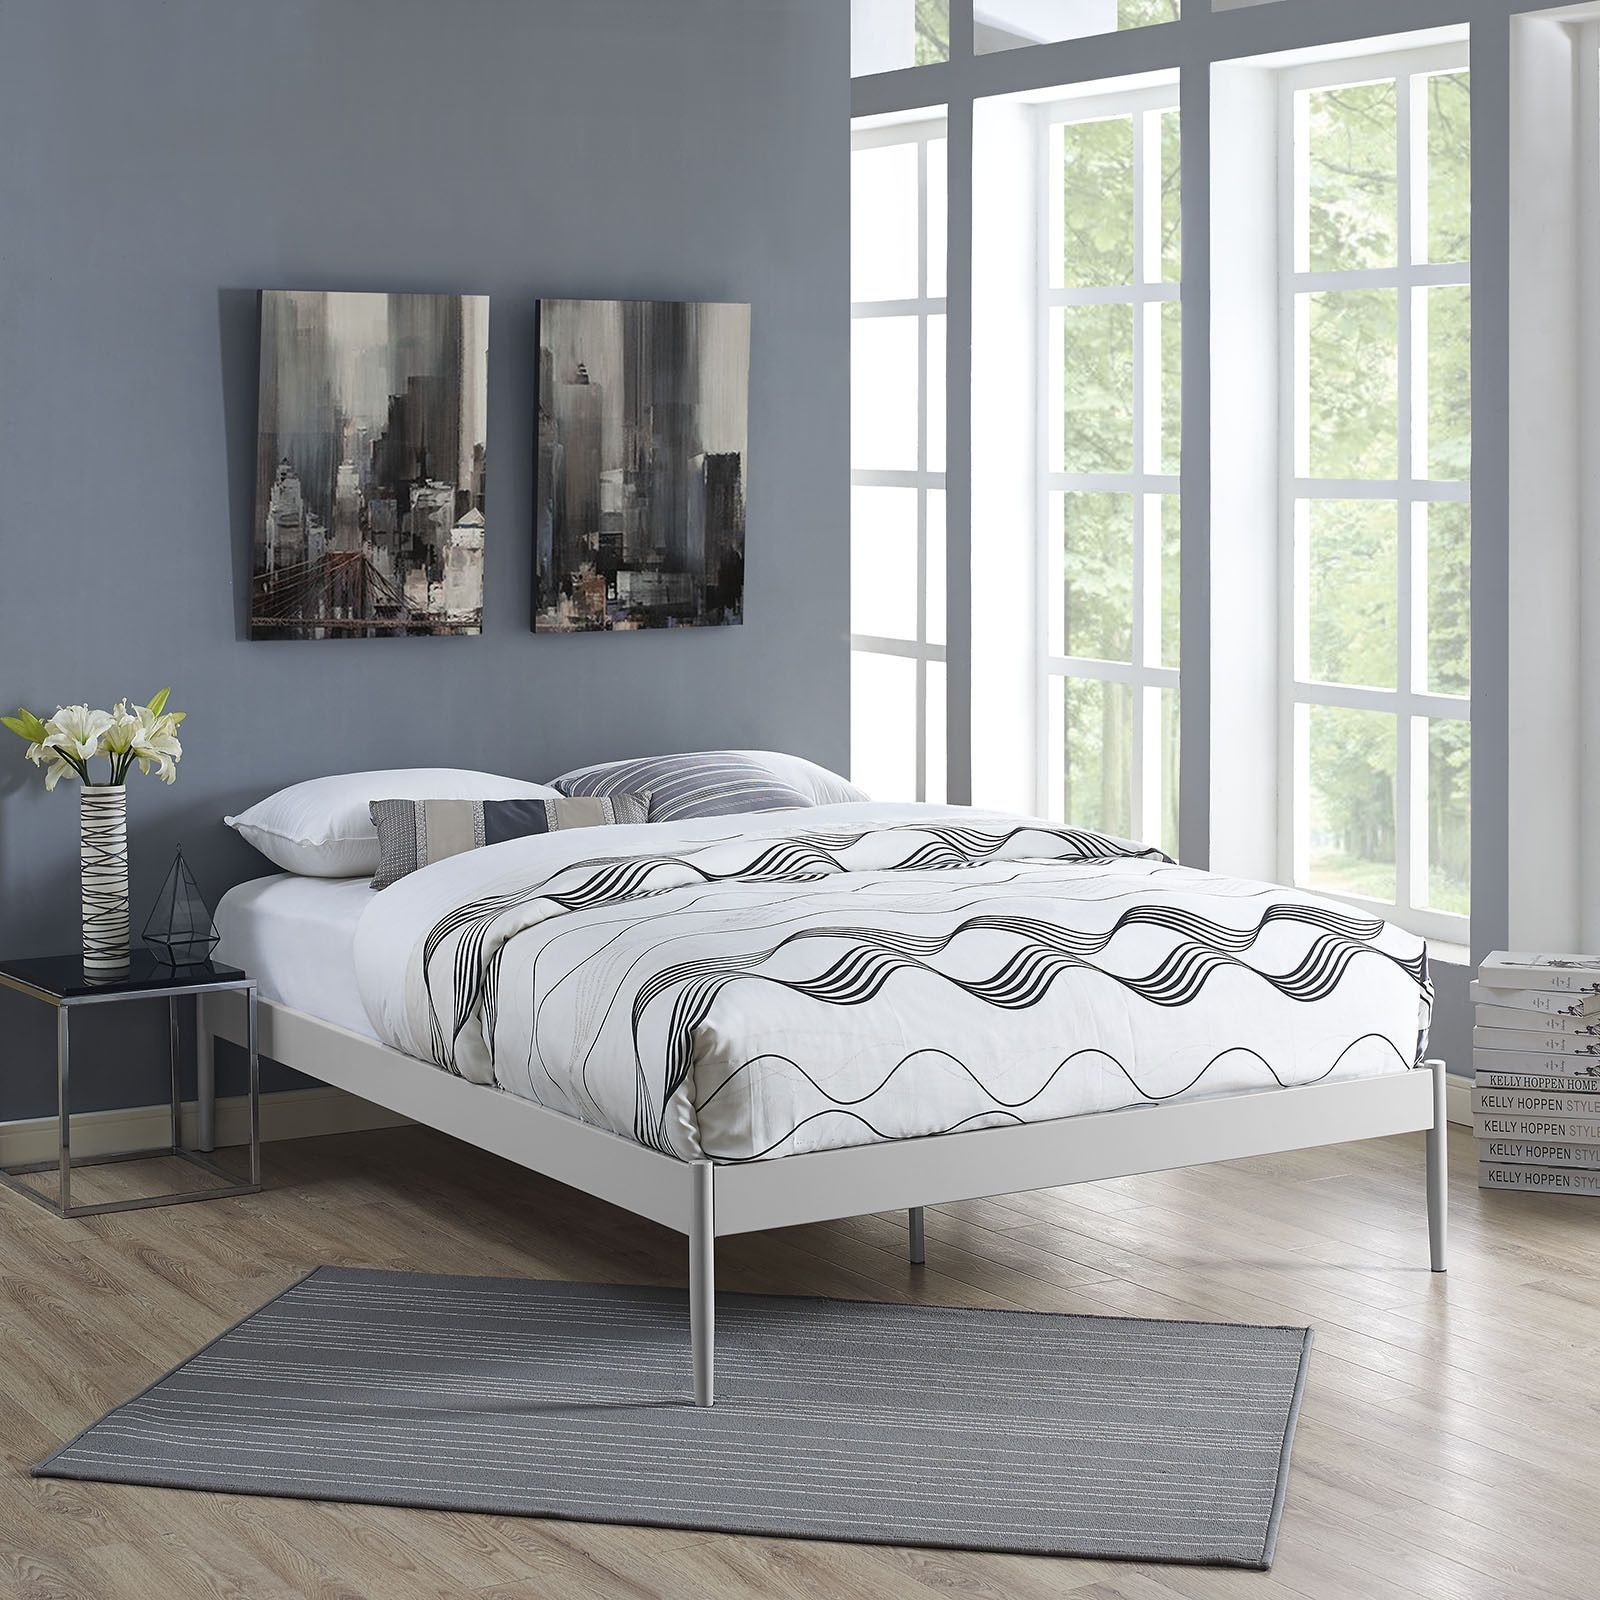 Modway Elsie Stainless Steel Bed Frame in Gray (King), Grey | Bed ...